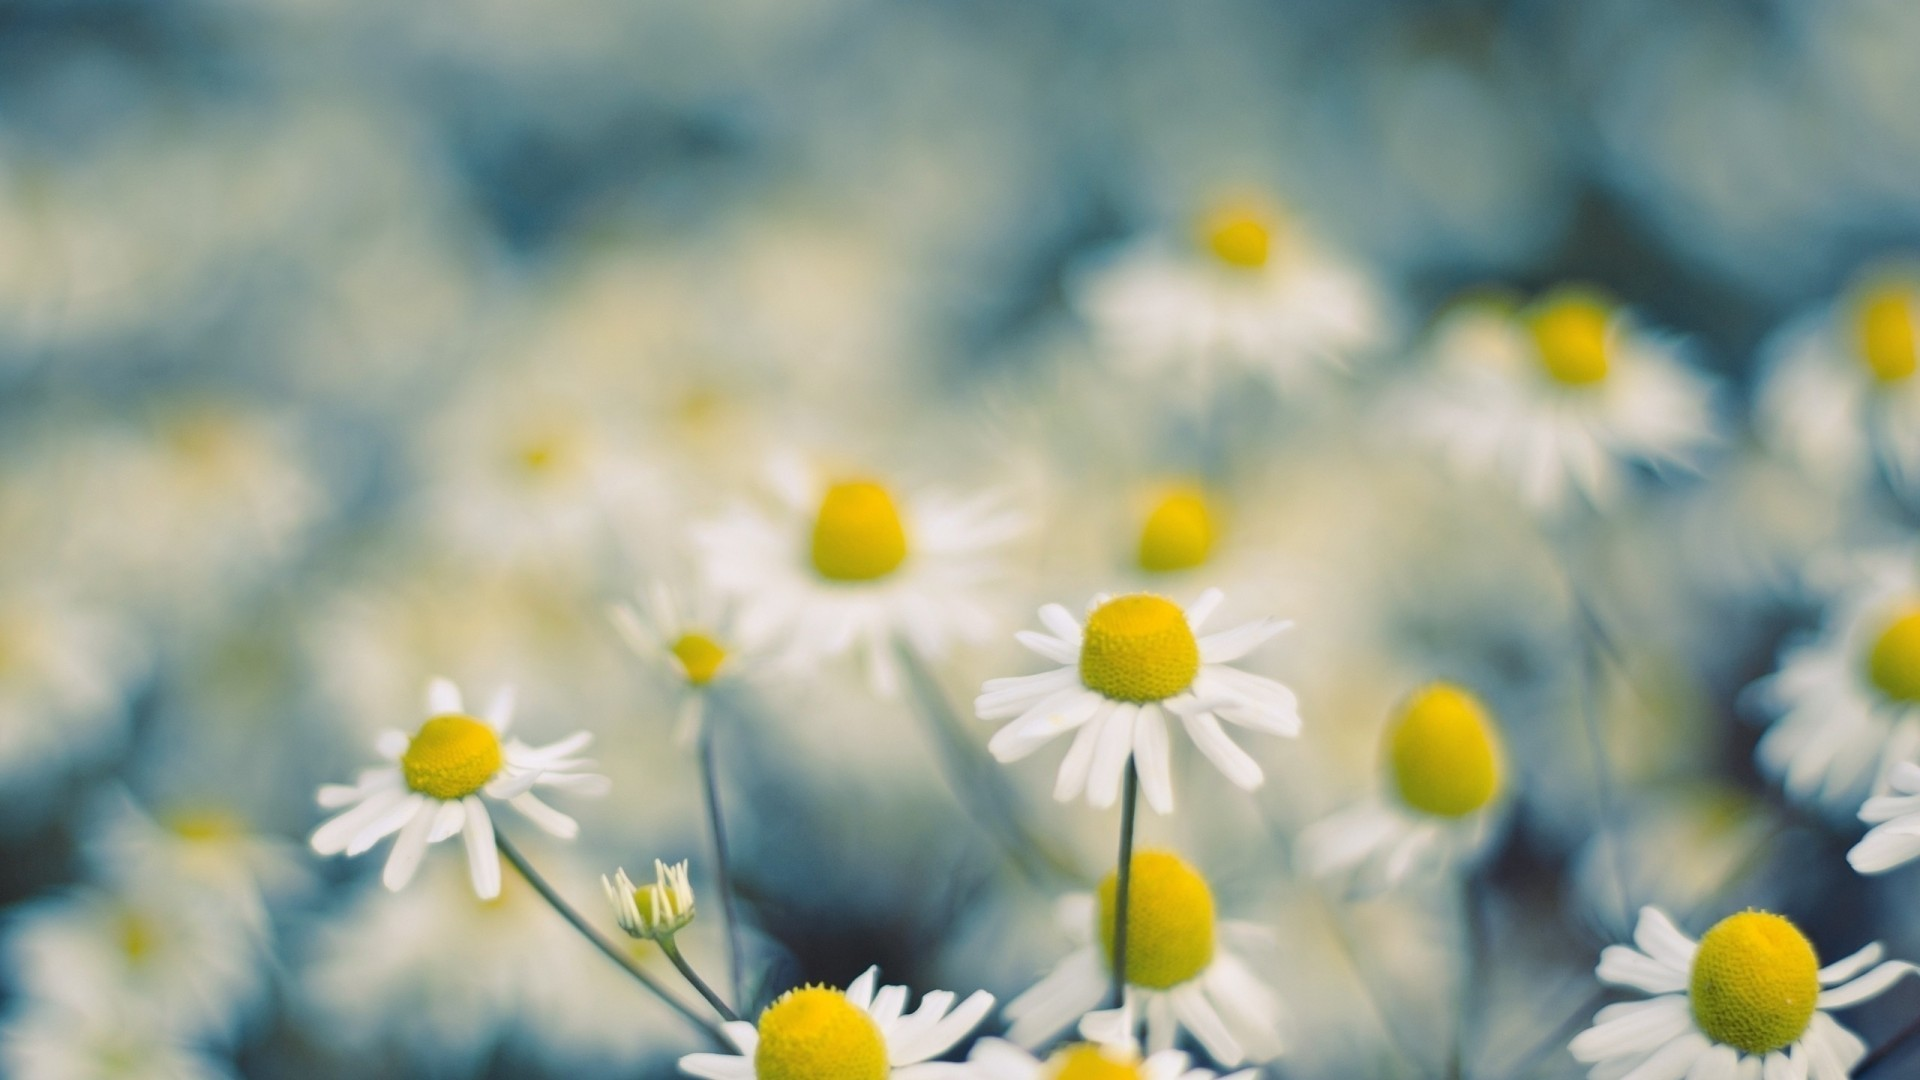 Daisies macro image HD Wallpaper